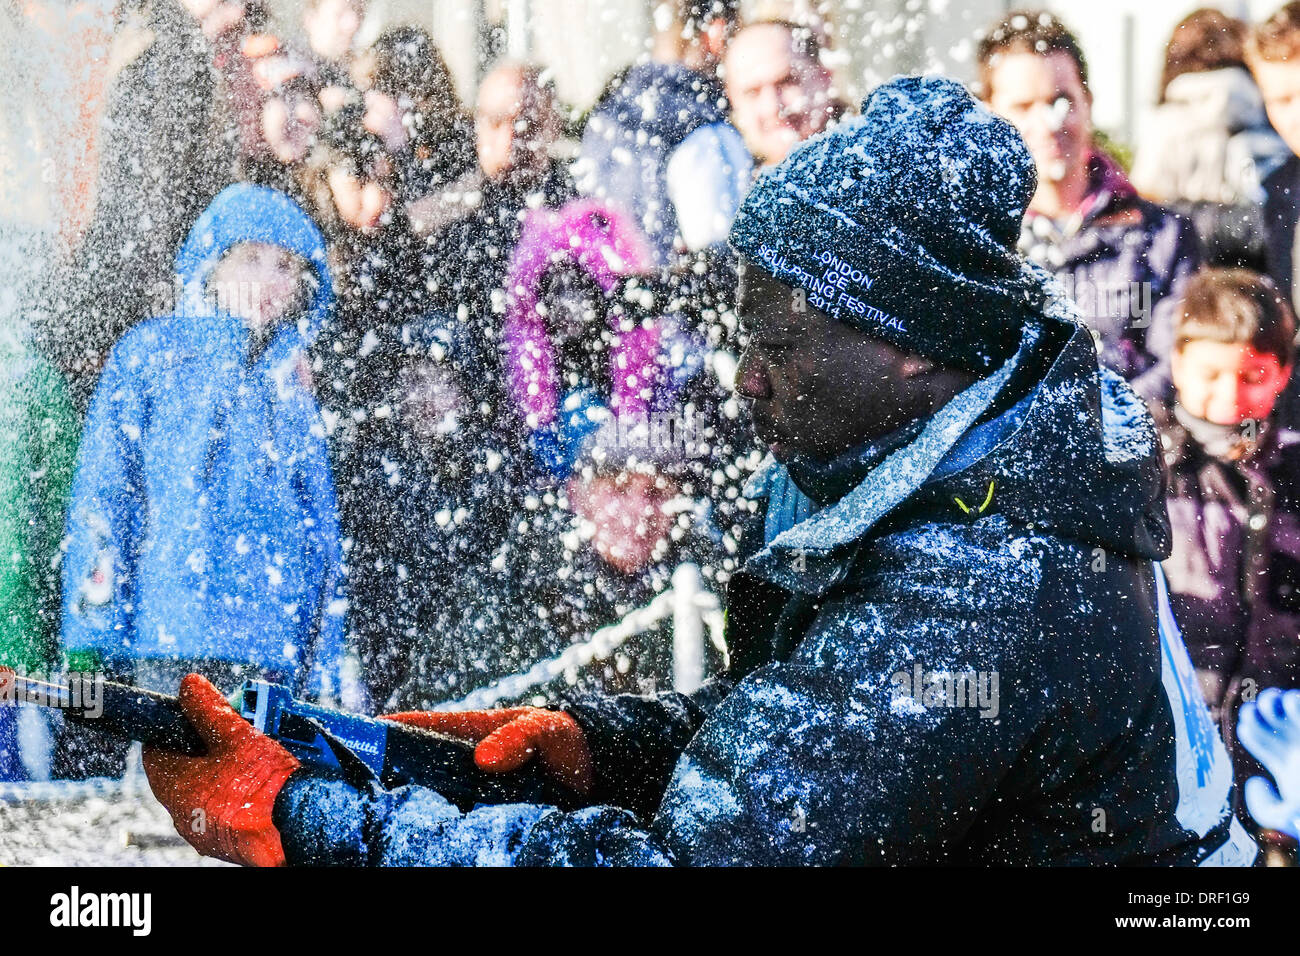 Mario Amagee from the African team working to create a sculpture as part of the London Ice Sculpture Festival 2014 - Stock Image